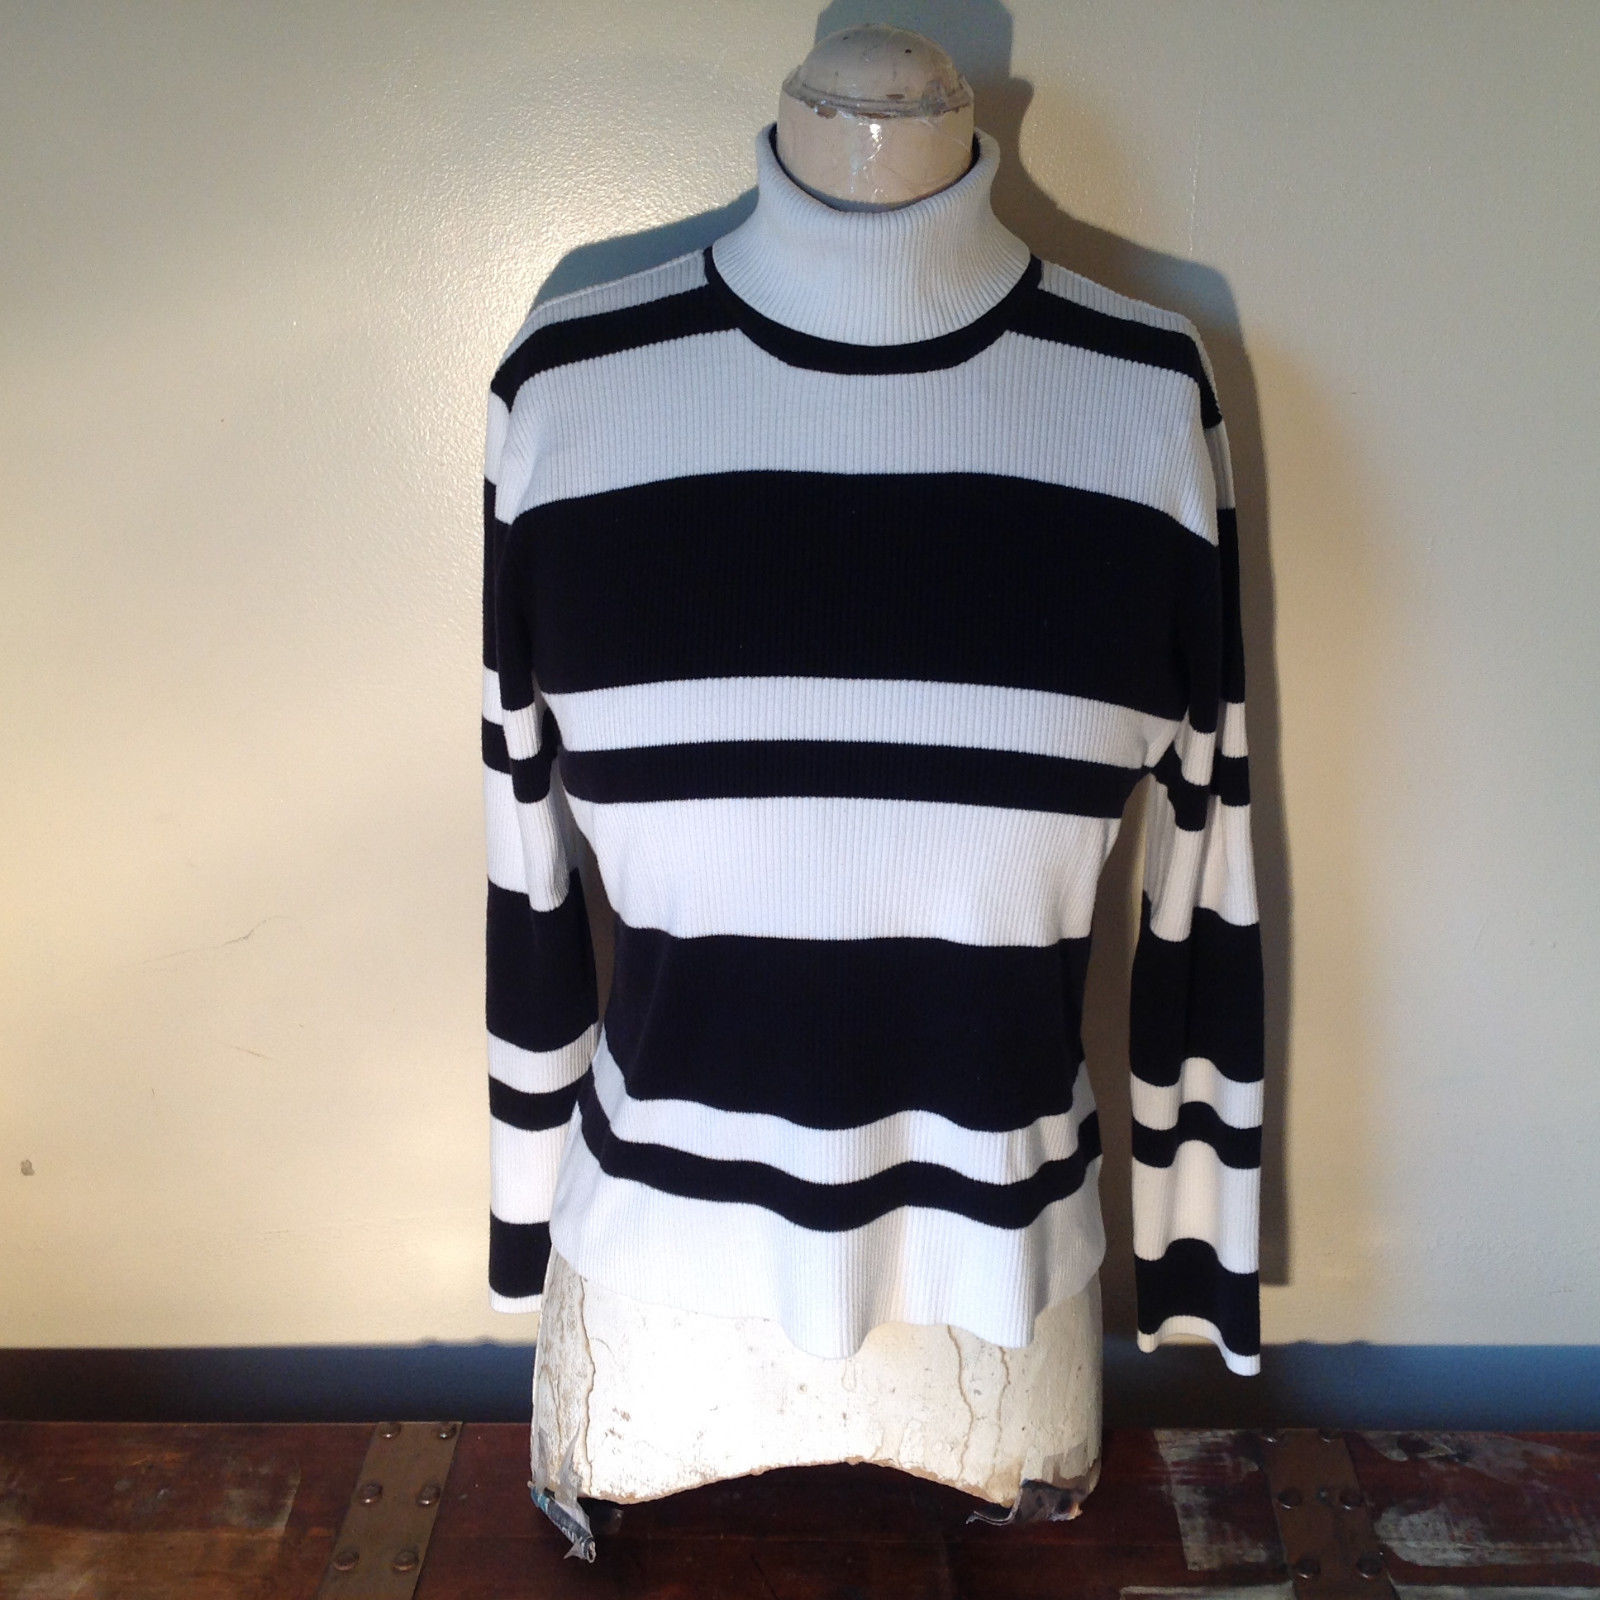 Black and White Striped Long Sleeve Turtleneck Sweater Worthington Size XL